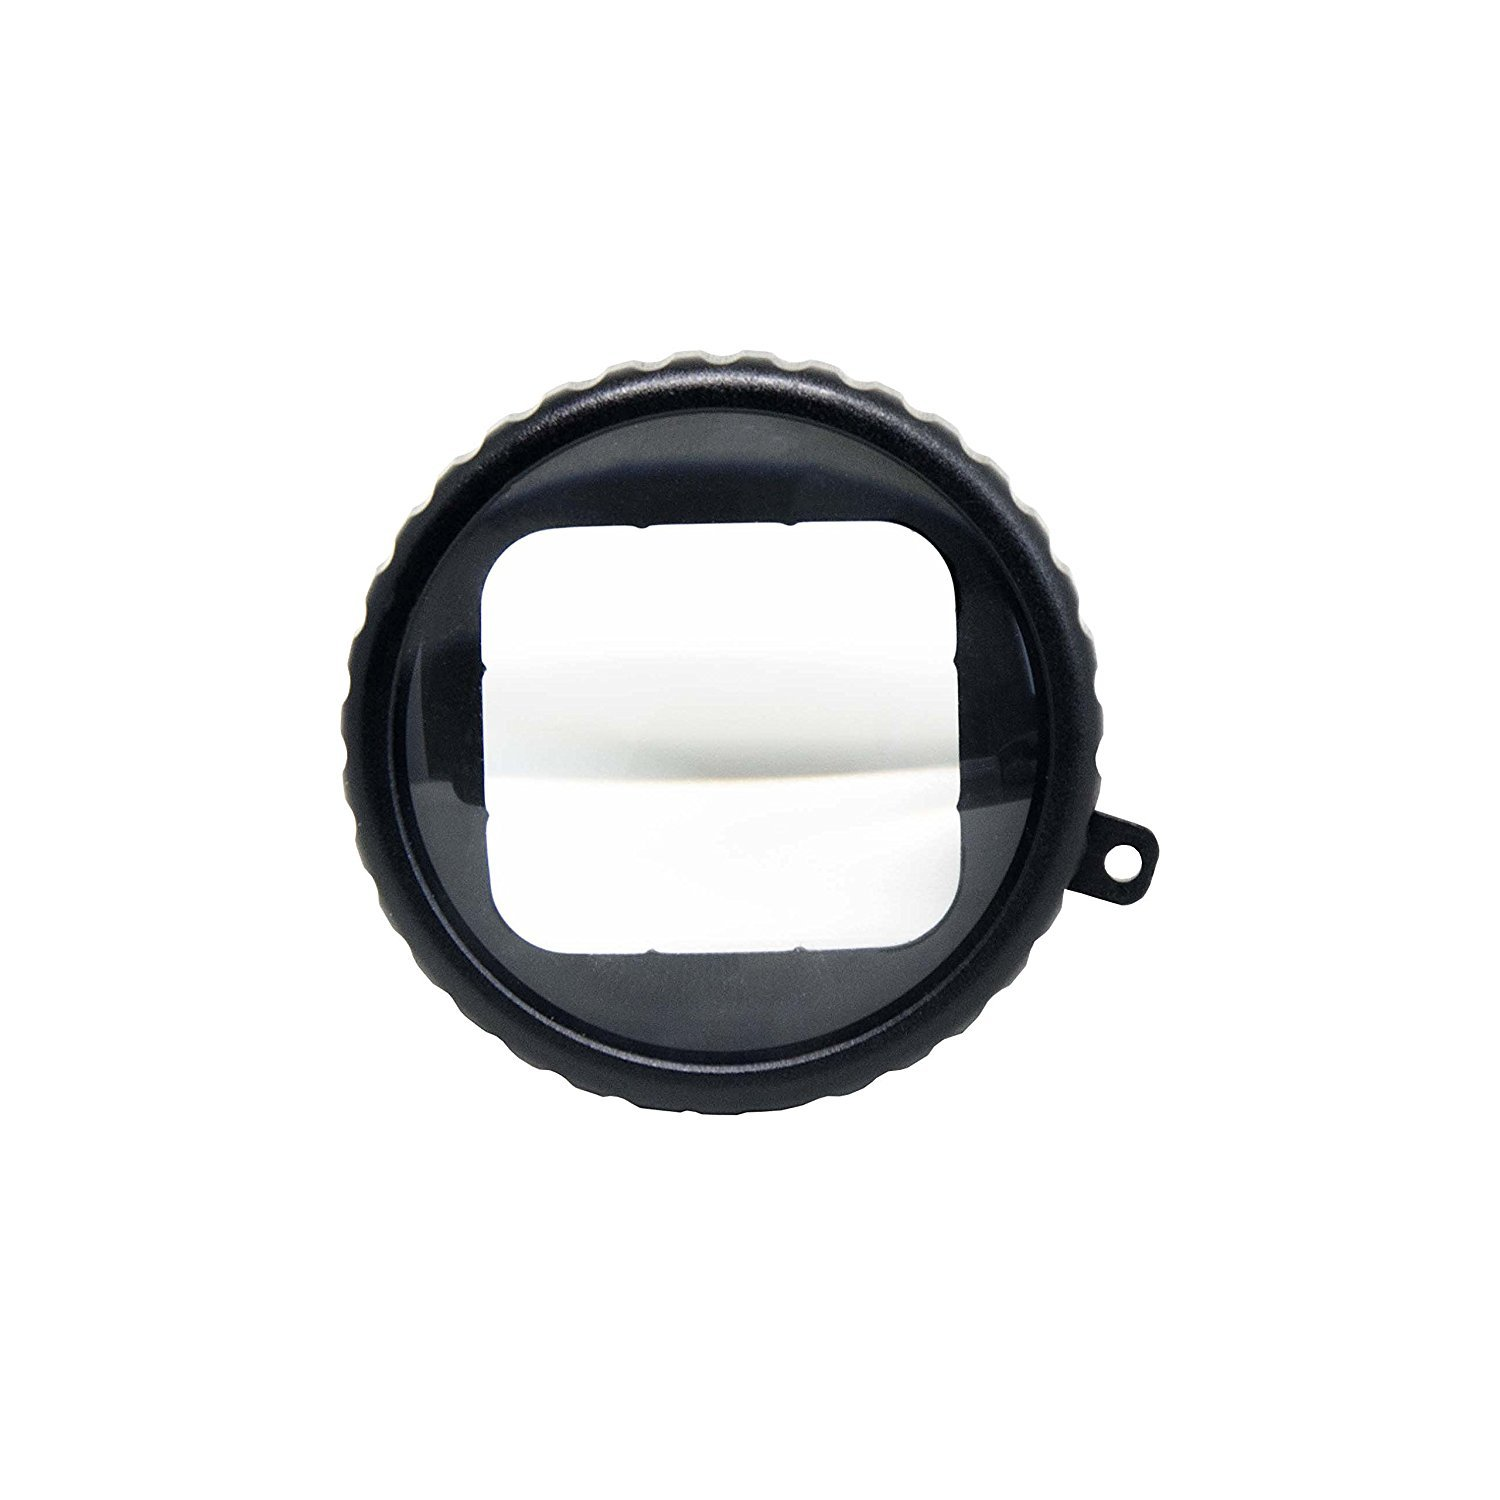 Freewell Macro 10x Filter compatible with GoPro Hero5 & Hero6 Black Camera by Freewell